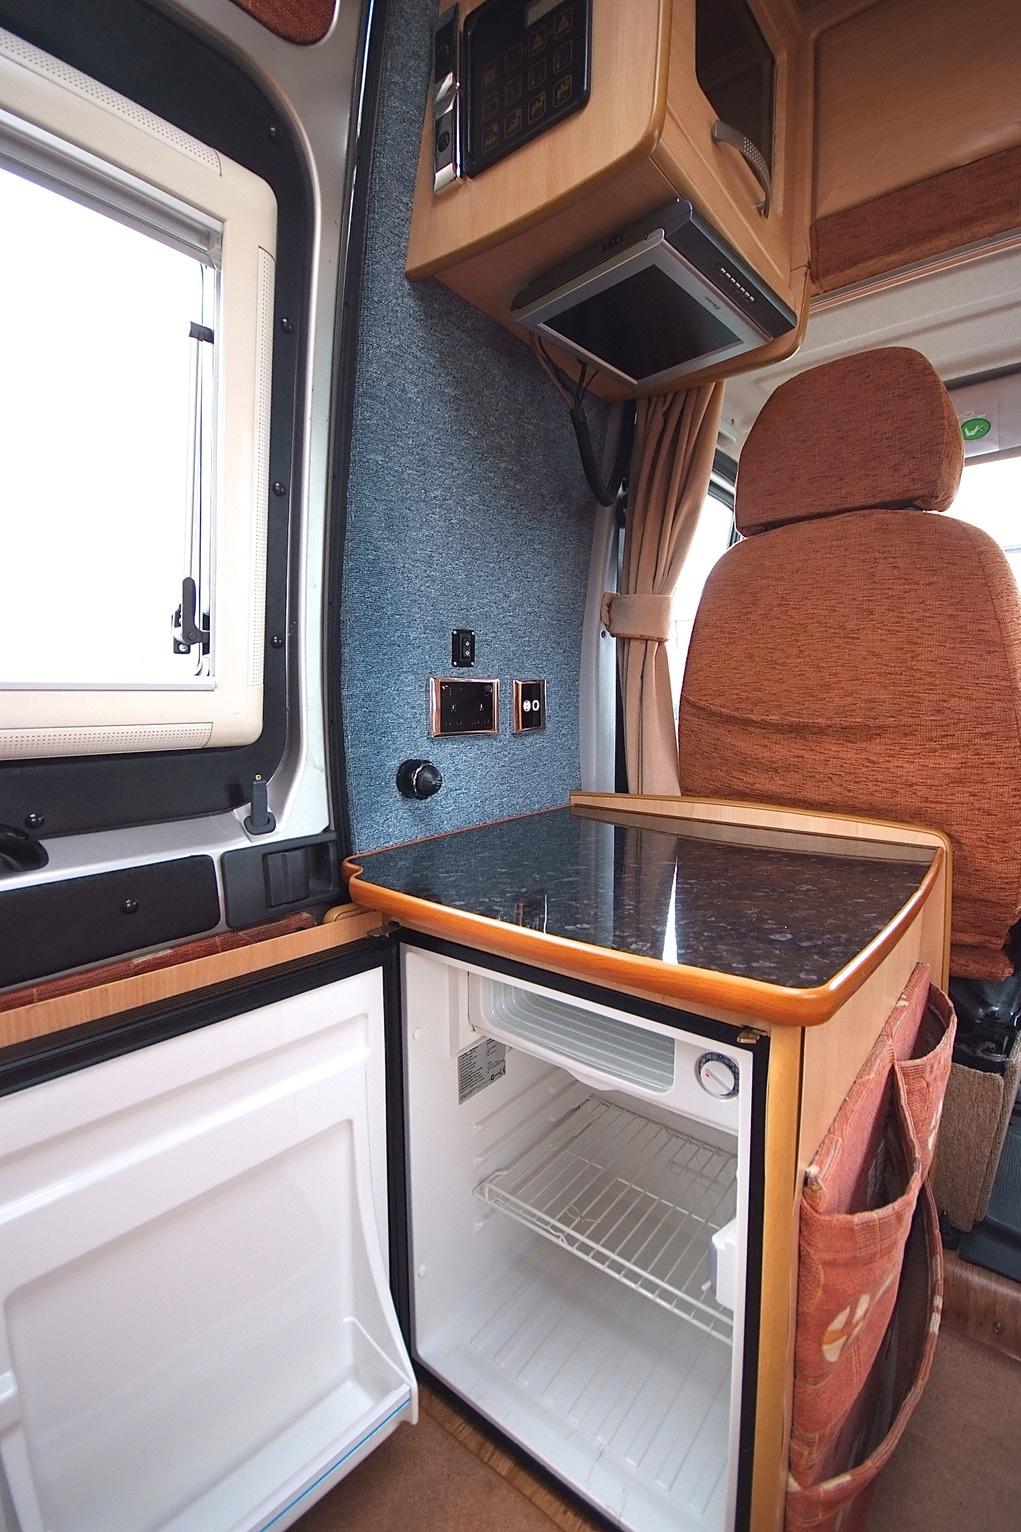 drop in kitchen sinks sold timberland freedom 2003 fiat 2 8 jtd hightop camper 6971